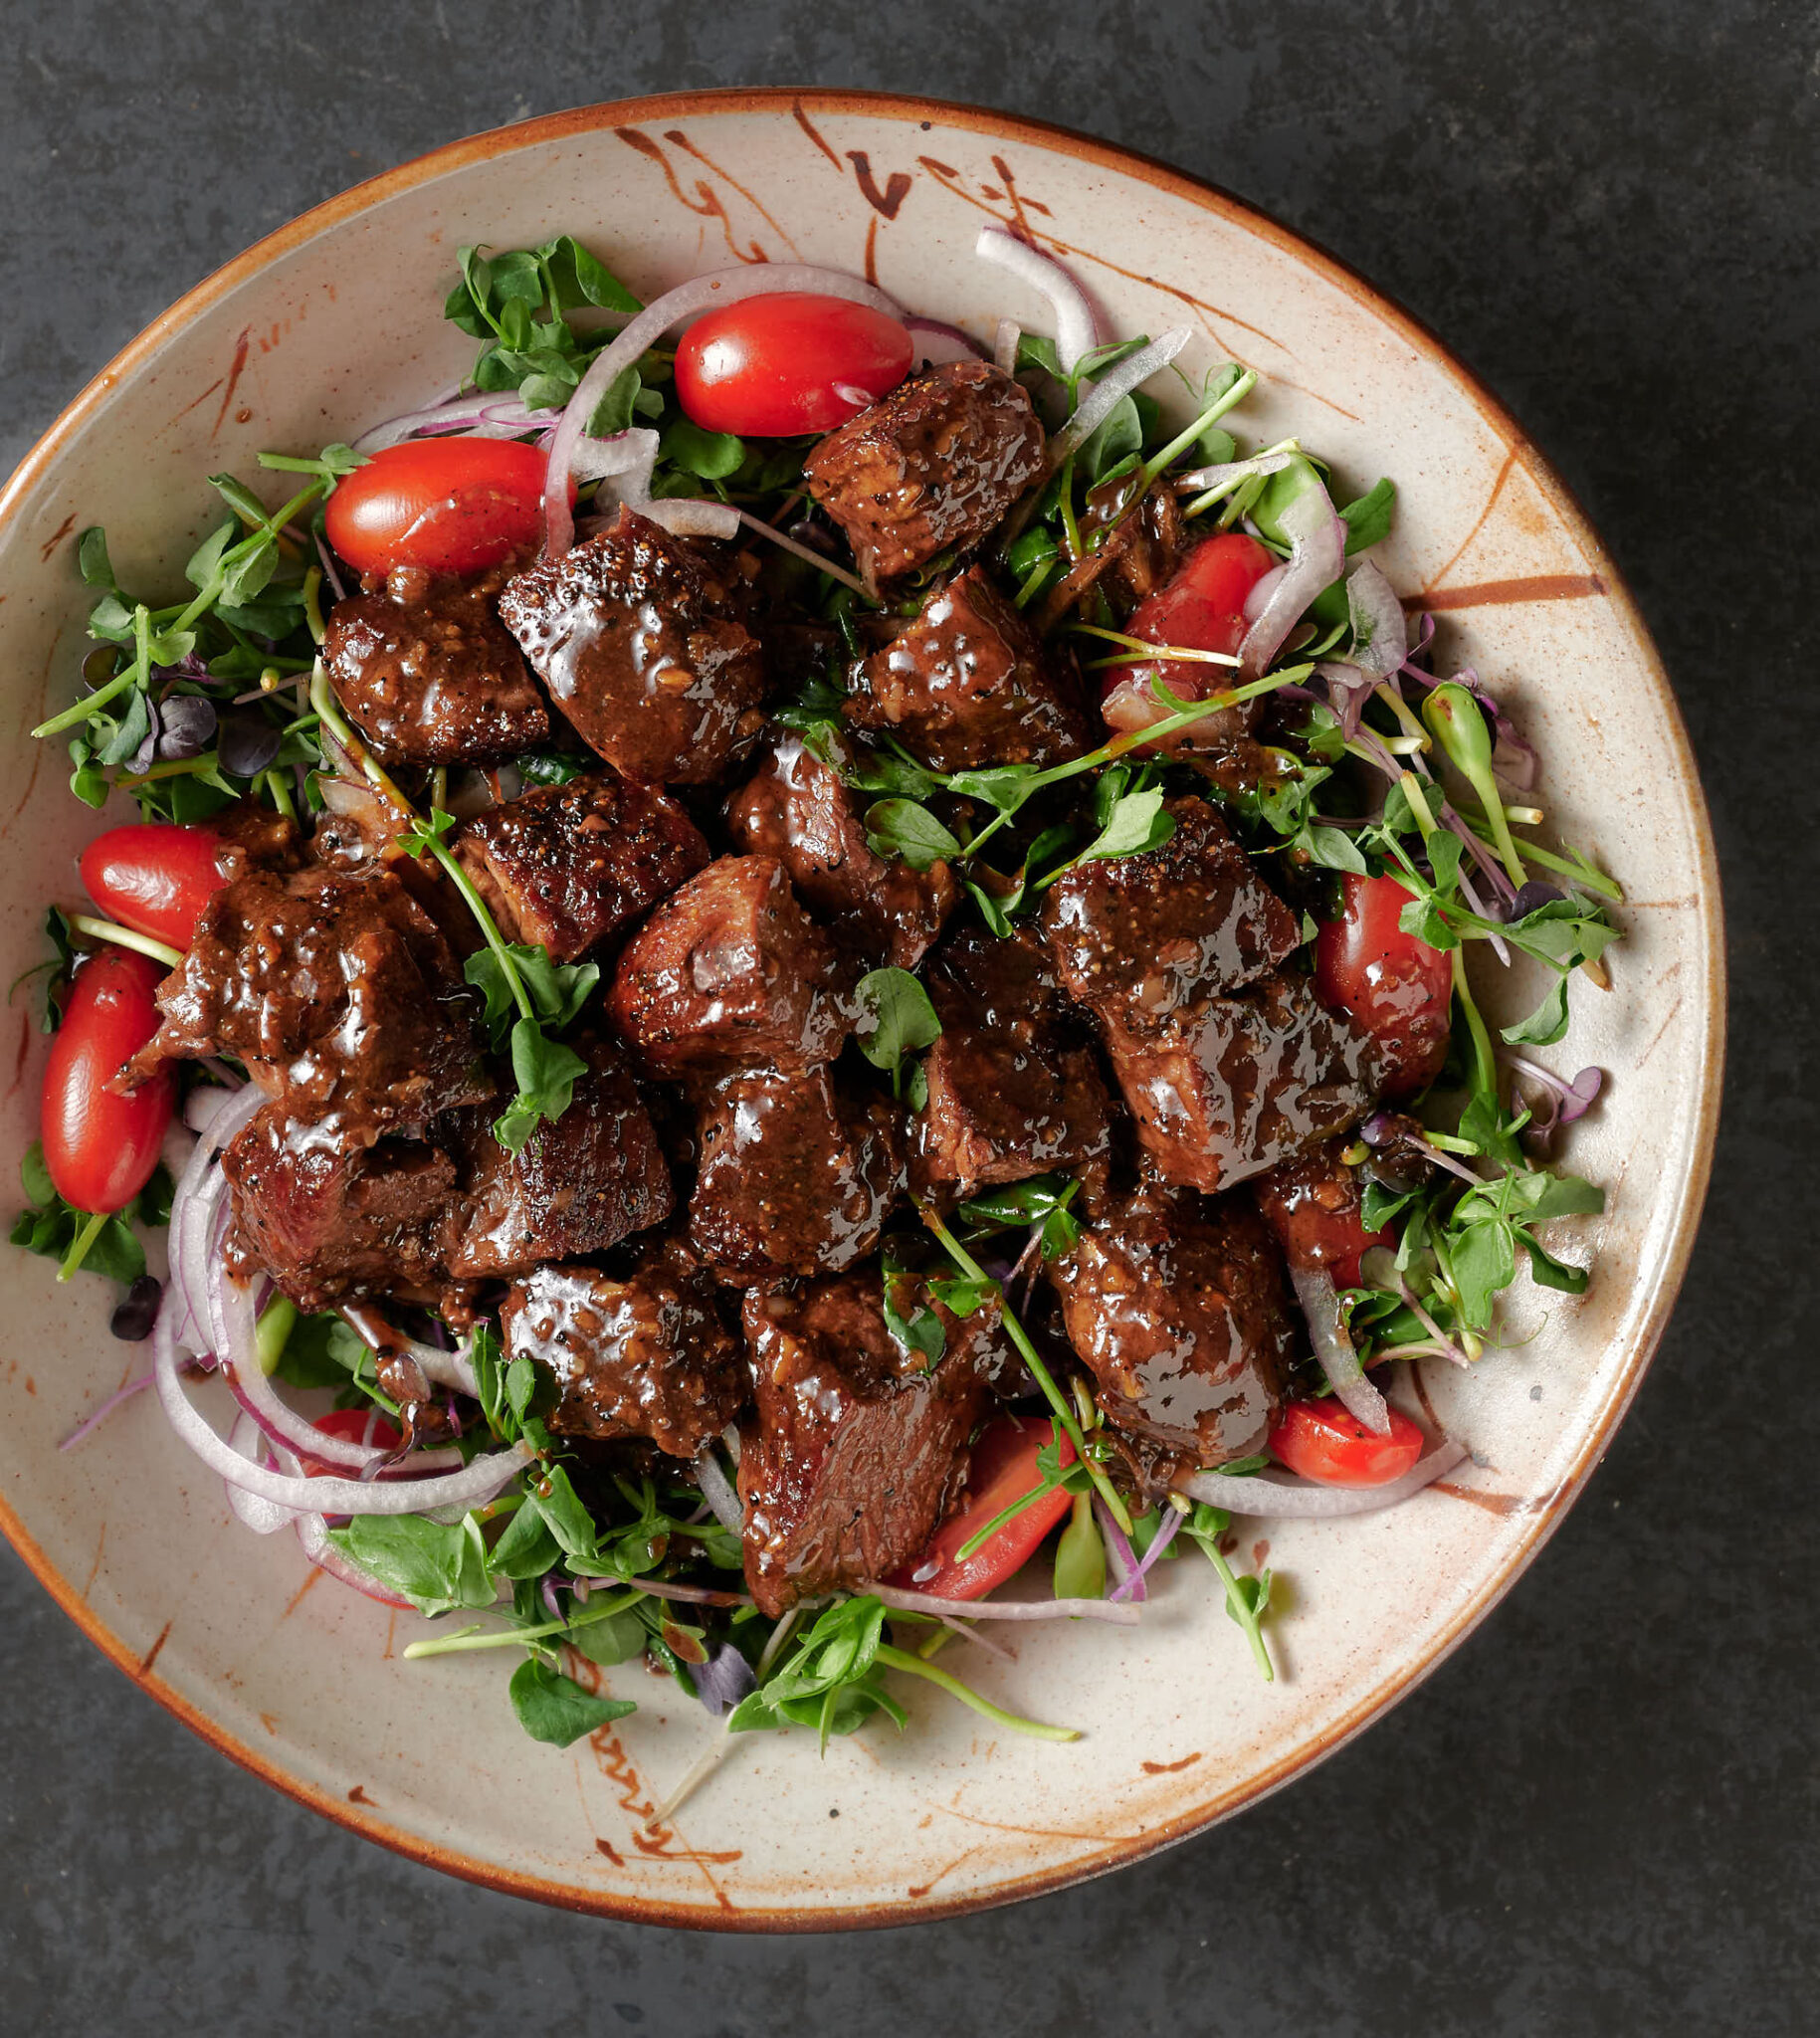 Bowl of shaking beef on a bed of micro-greens from above.